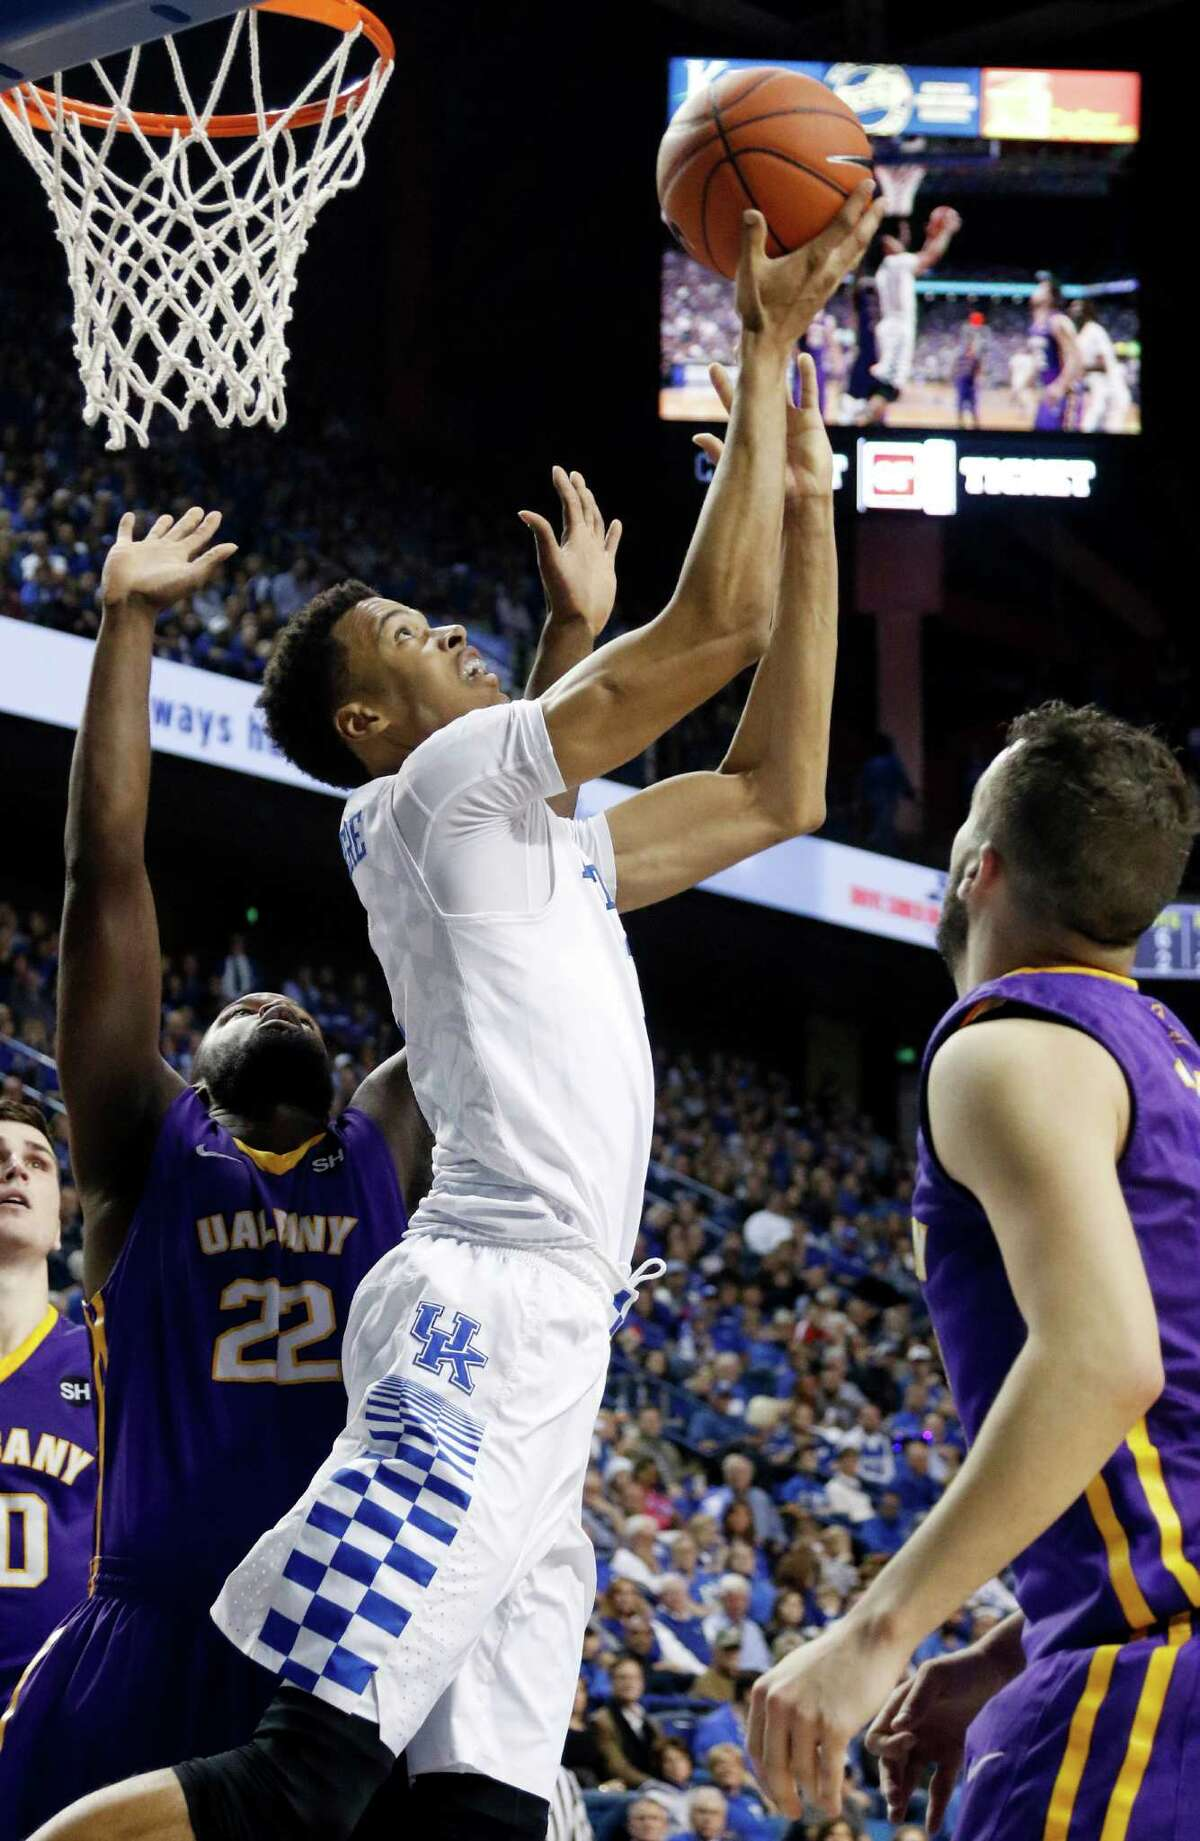 Kentucky's Skal Labissiere, center, shoots between Albany's Richard Peters (22) and Peter Hooley during the second half of an NCAA college basketball game Friday, Nov. 13, 2015, in Lexington, Ky. Kentucky won 78-65. (AP Photo/James Crisp) ORG XMIT: KYJC108